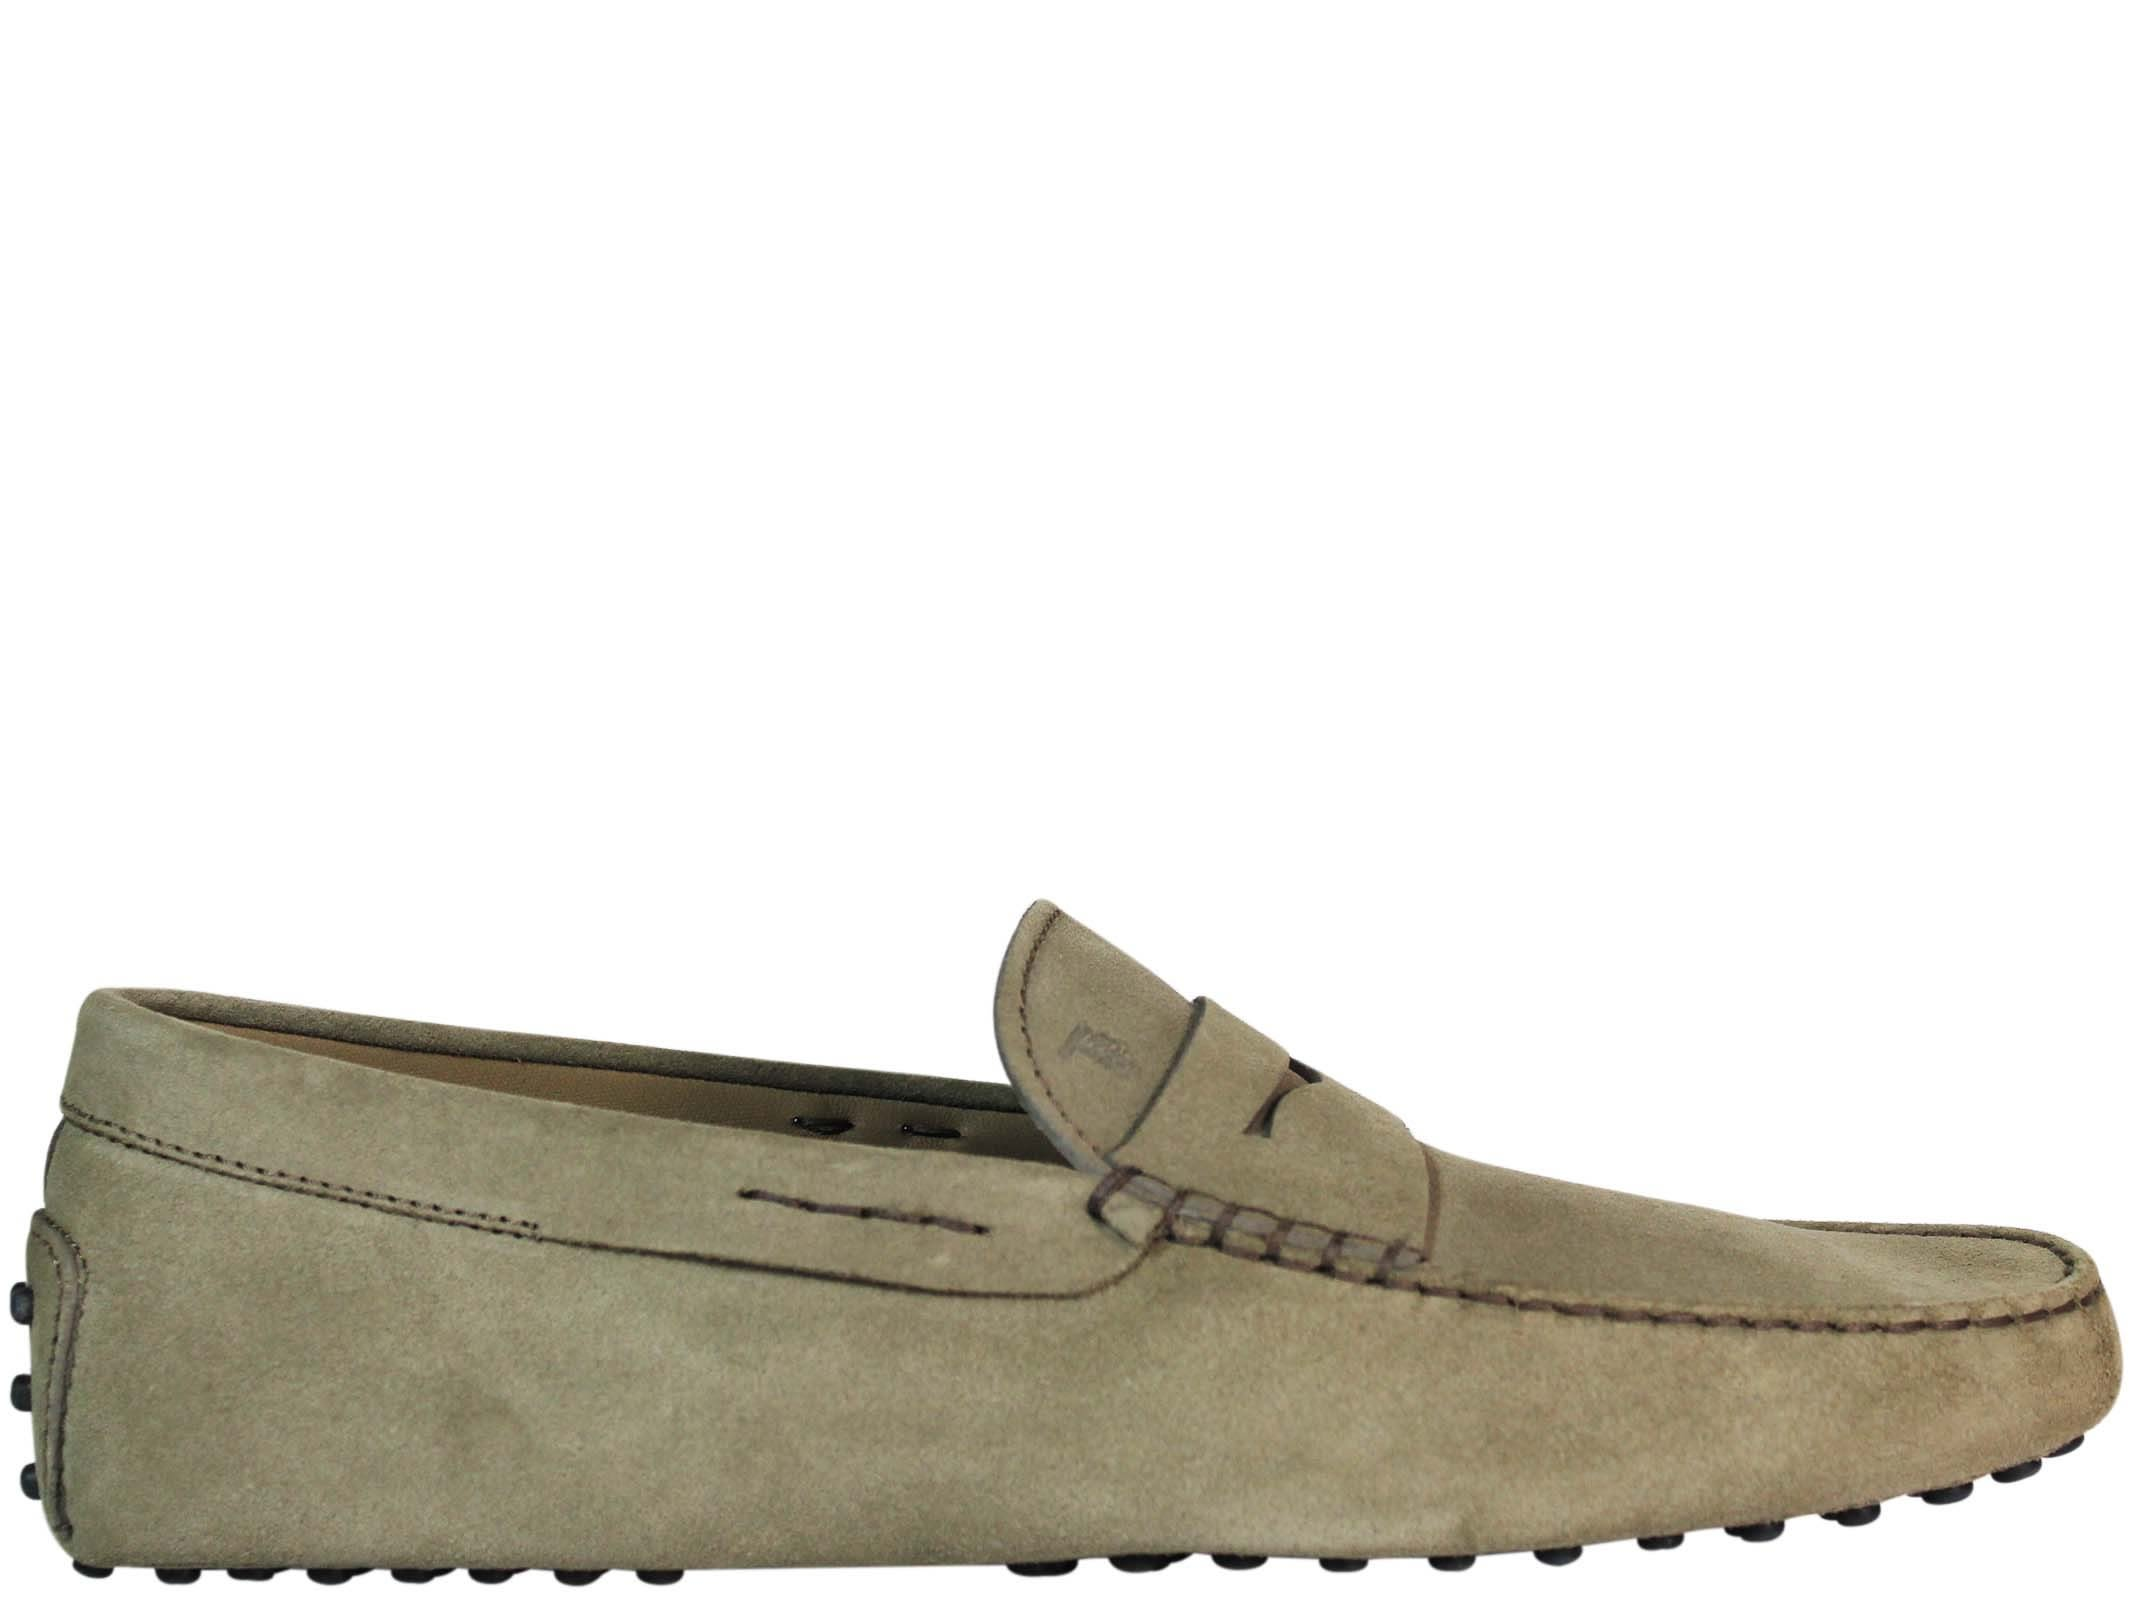 Tods Sand Classic Driving Shoes